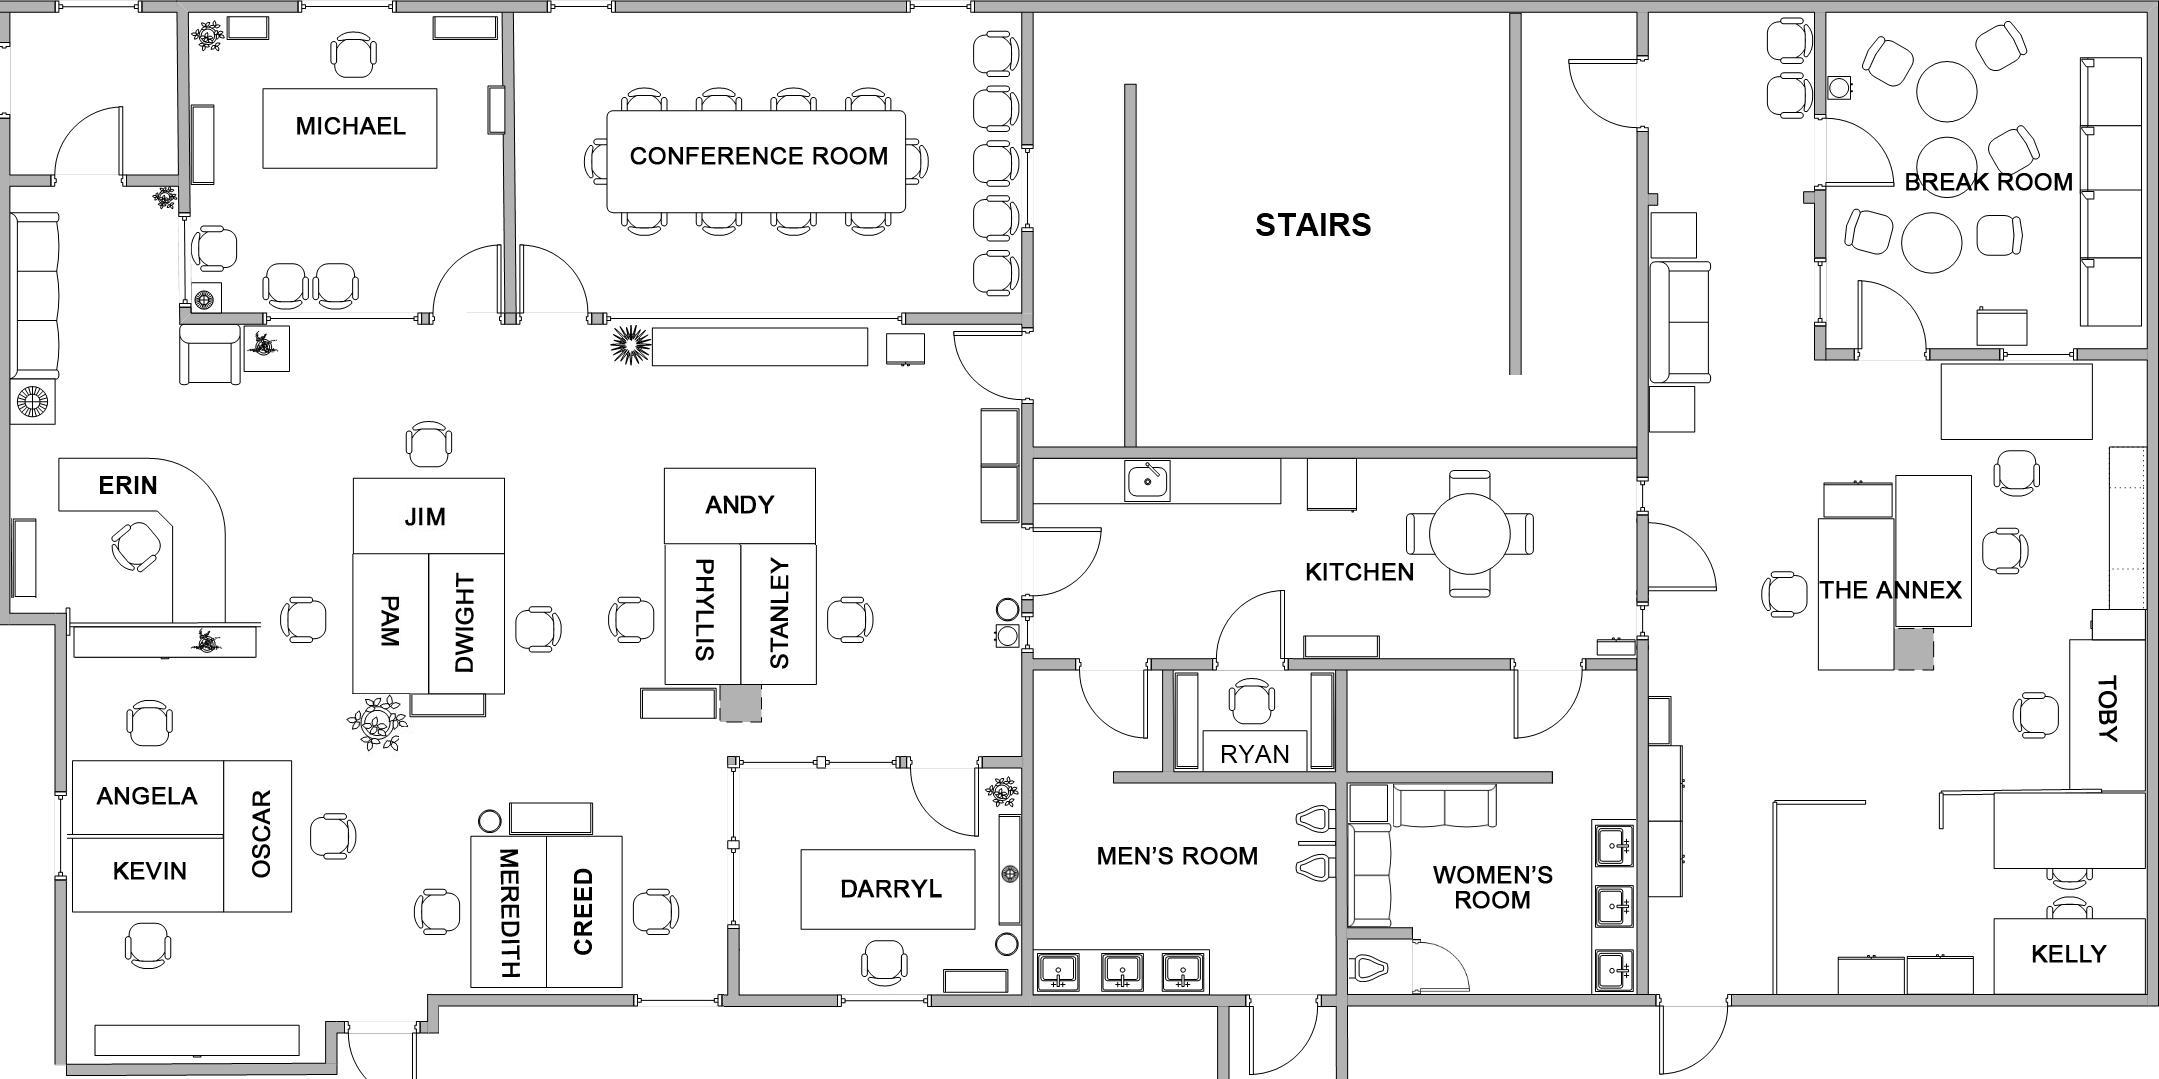 Dunder Mifflin Office Layout!